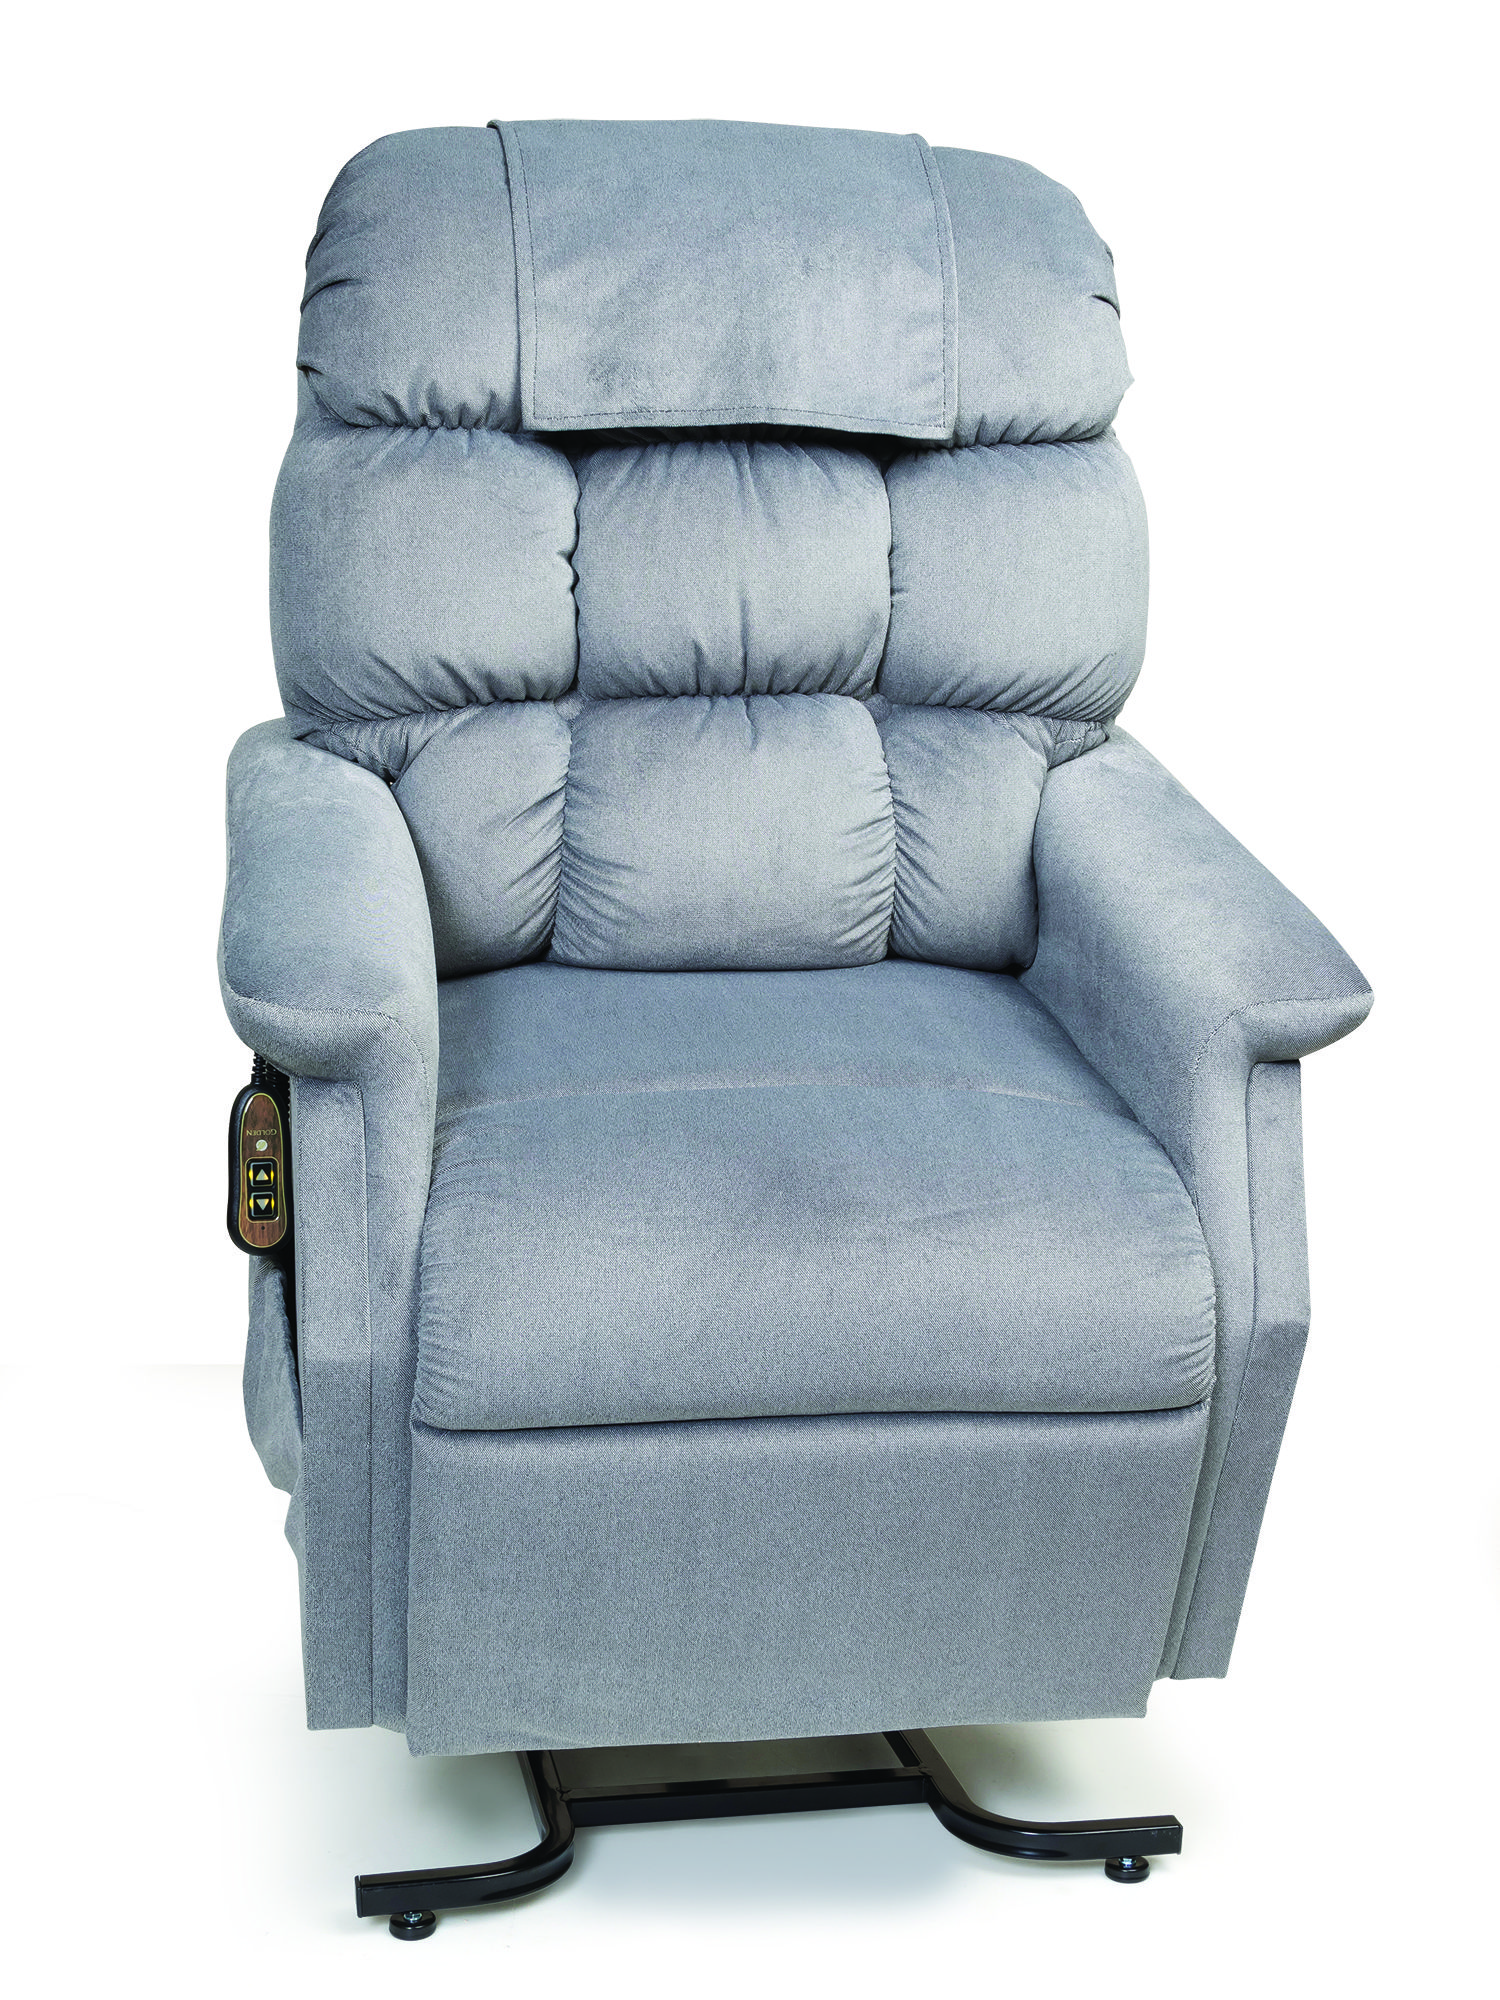 Cambridge Three Position Lift Chair With Full Chaise Pad With